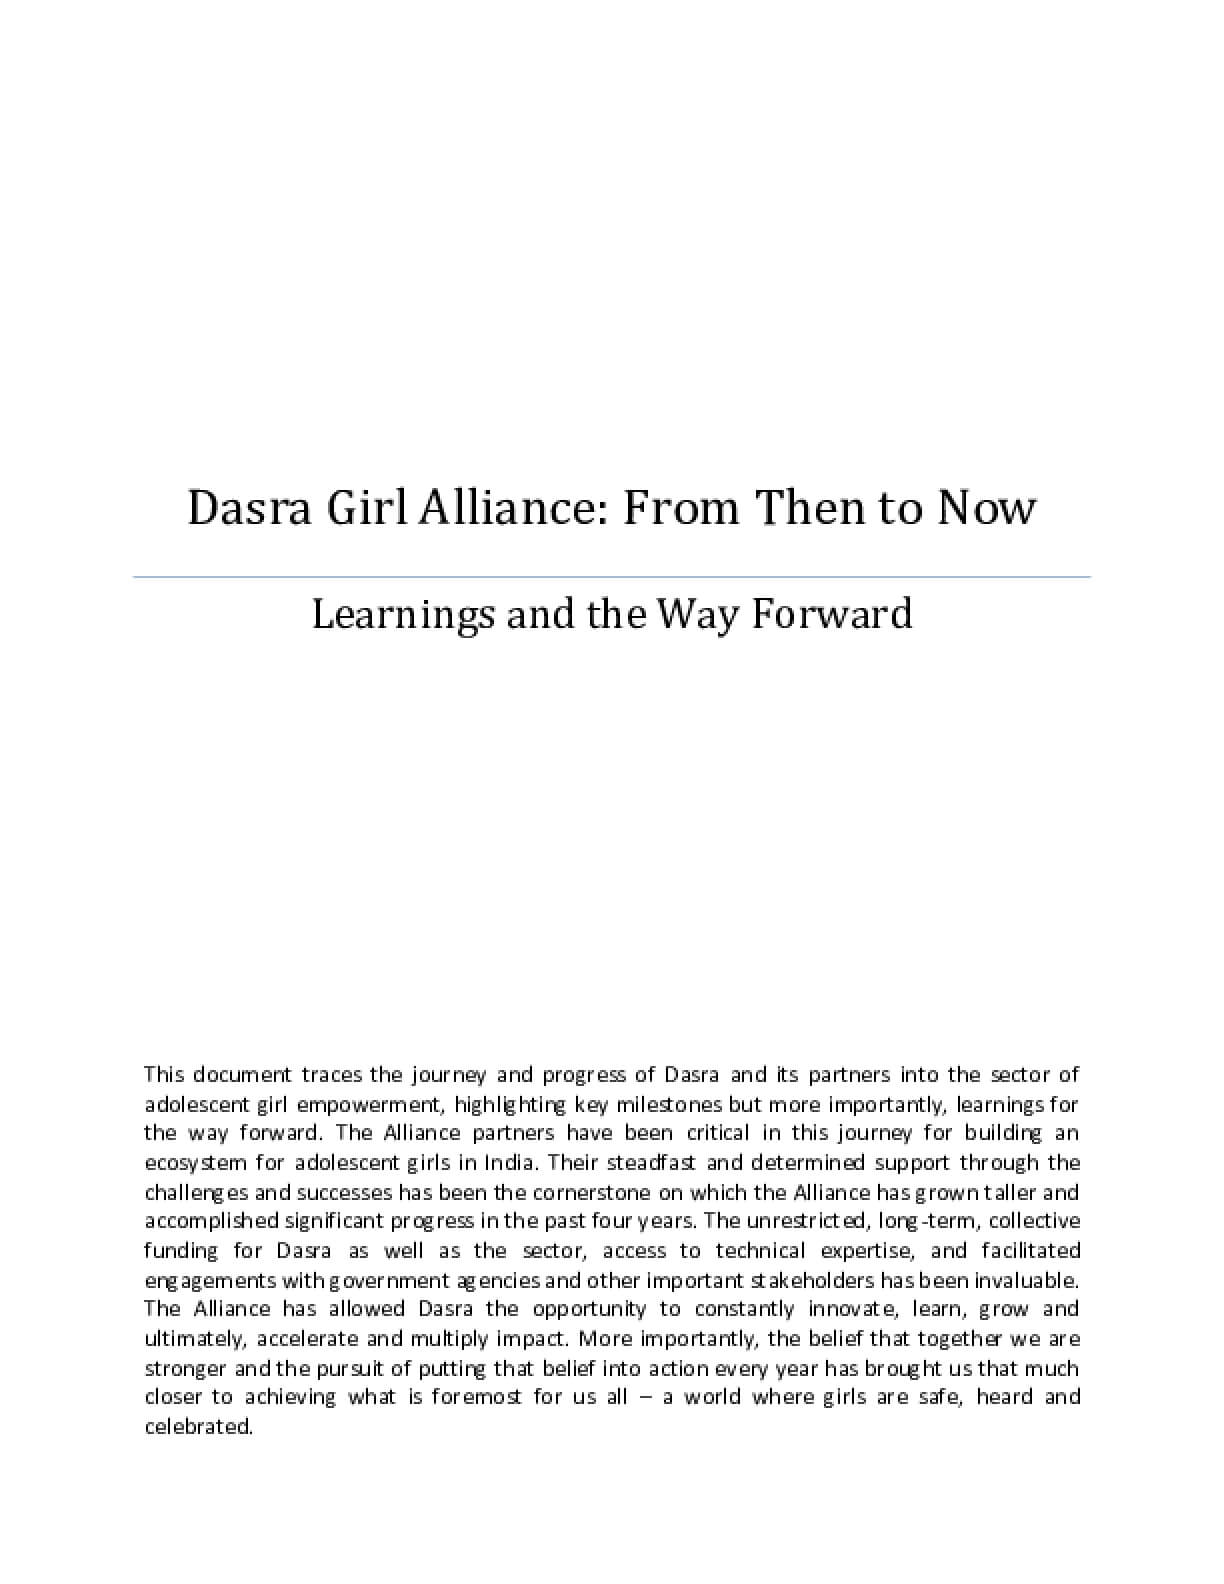 Dasra Girl Alliance: From Then to Now - Learnings and the Way Forward